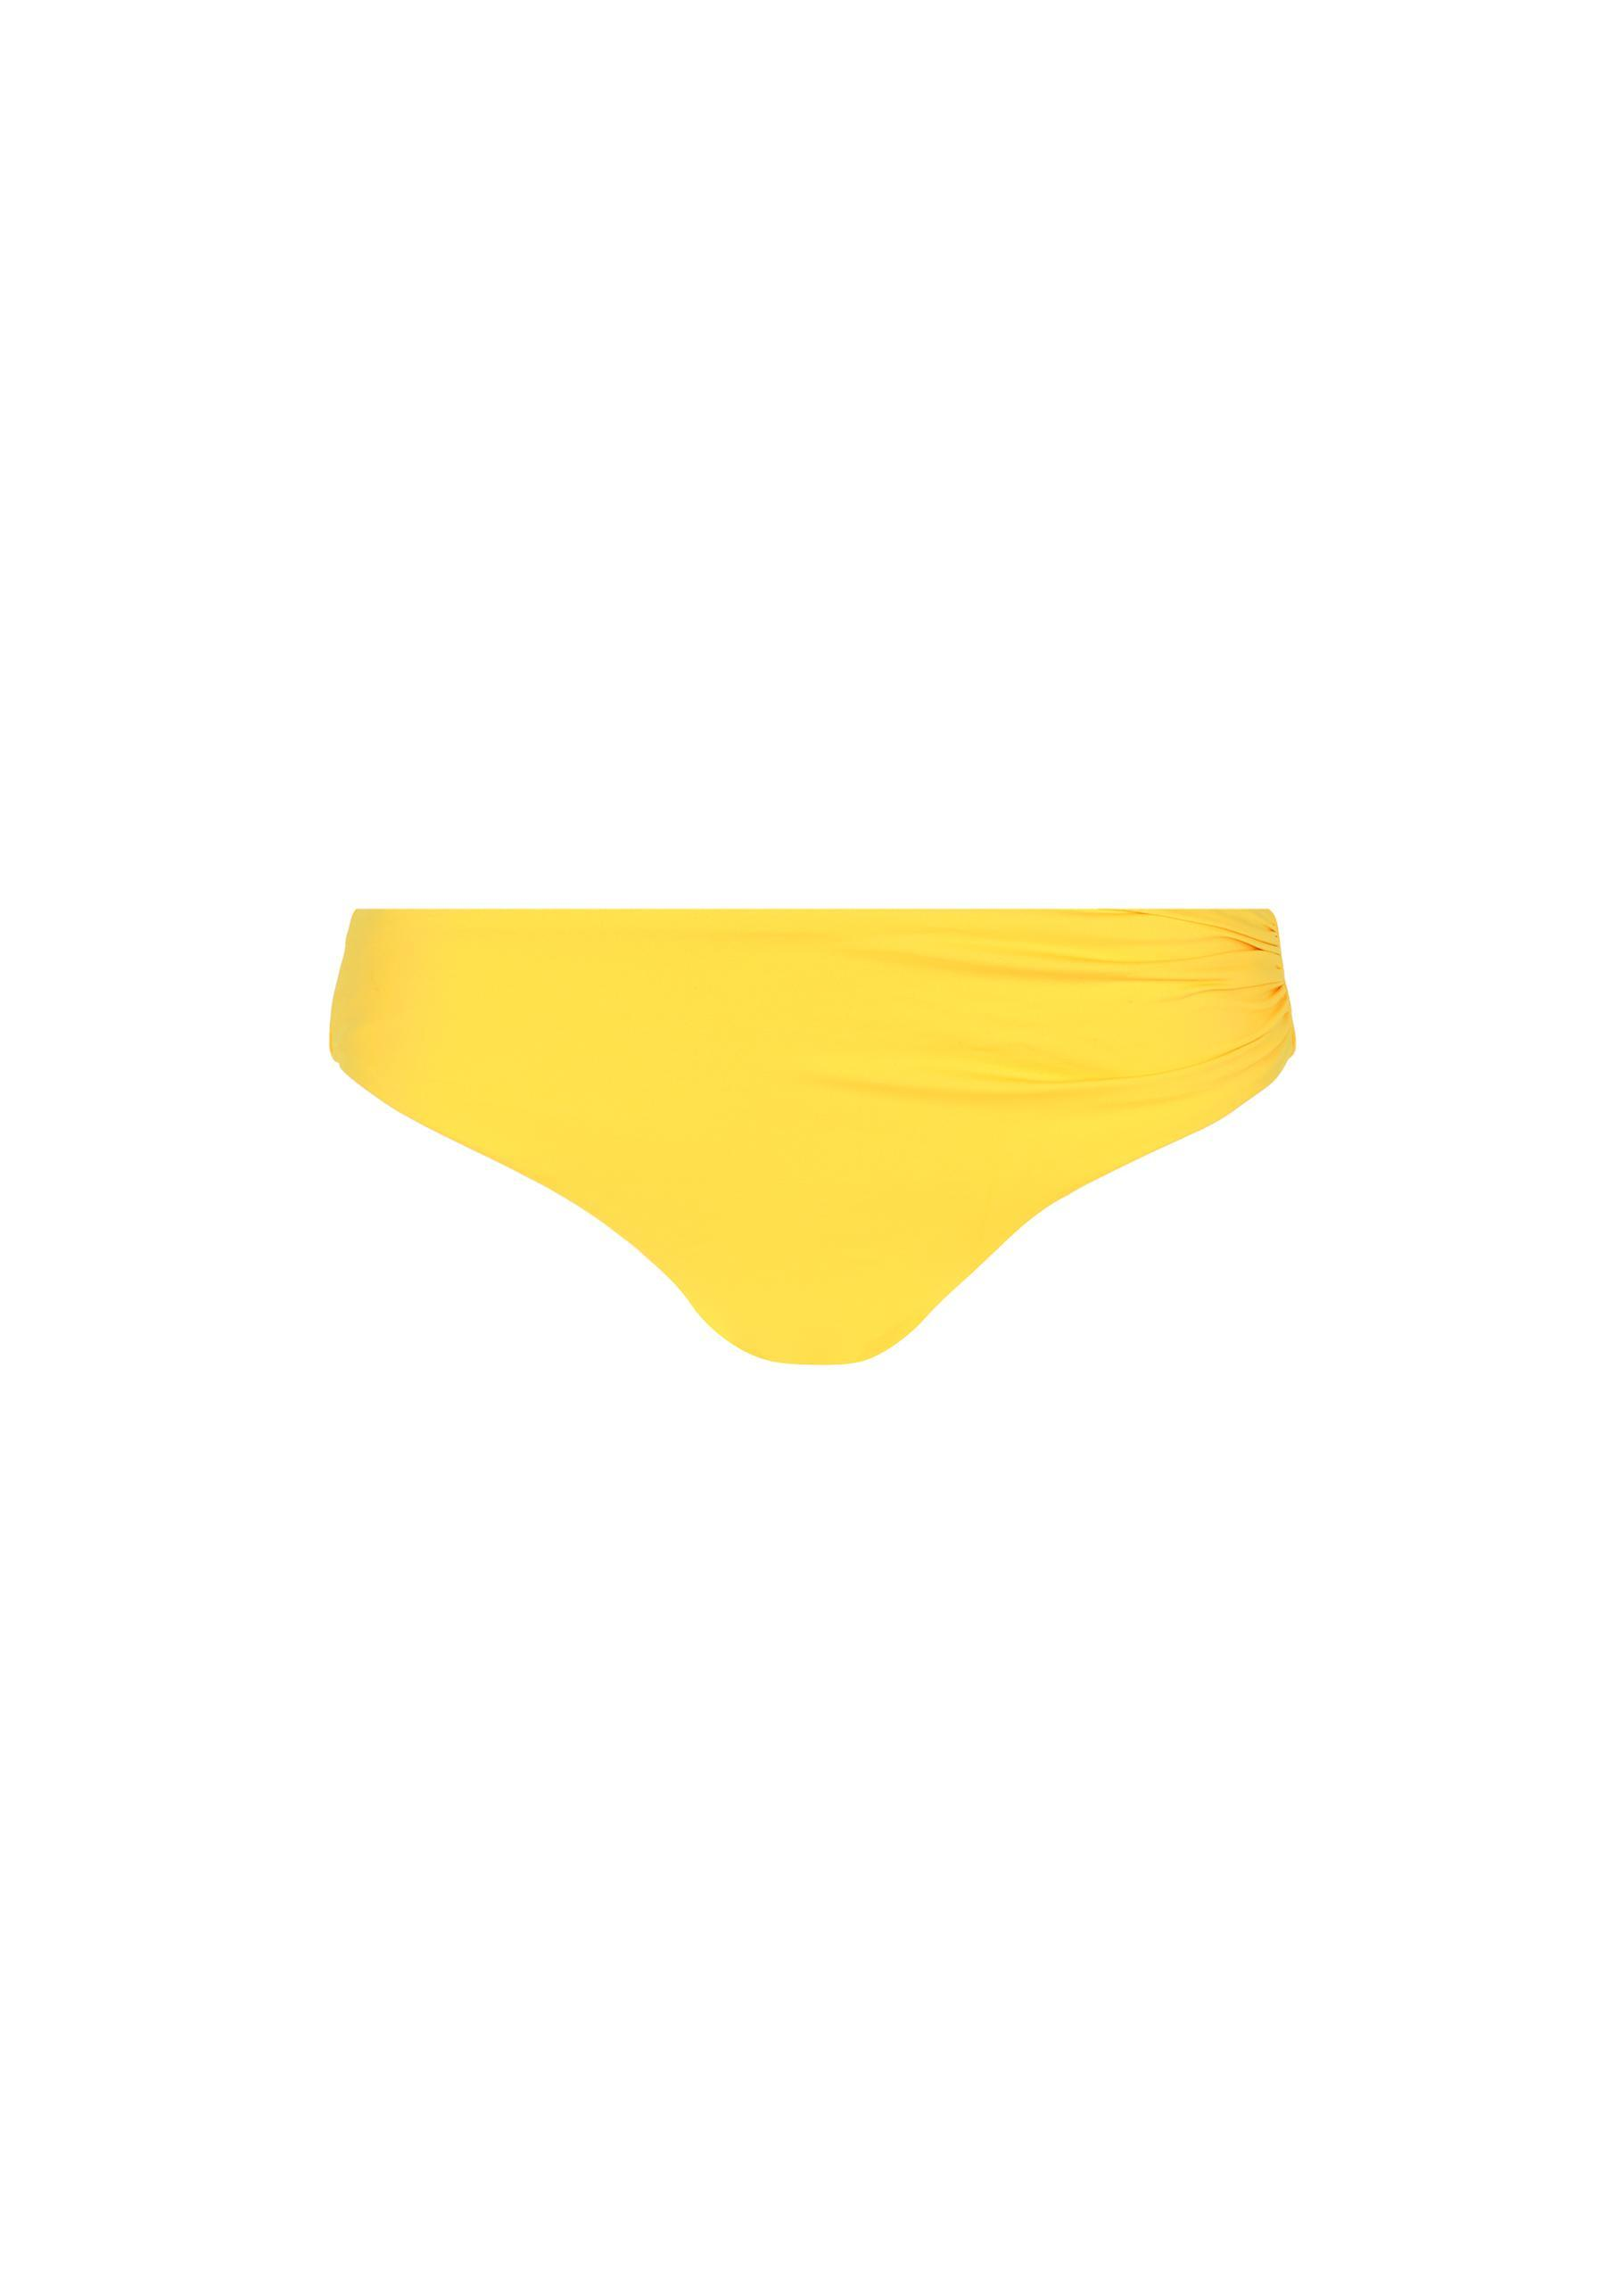 78aa6f411f Lyst - Calzedonia Indonesia High Waist Bikini Bottoms in Yellow